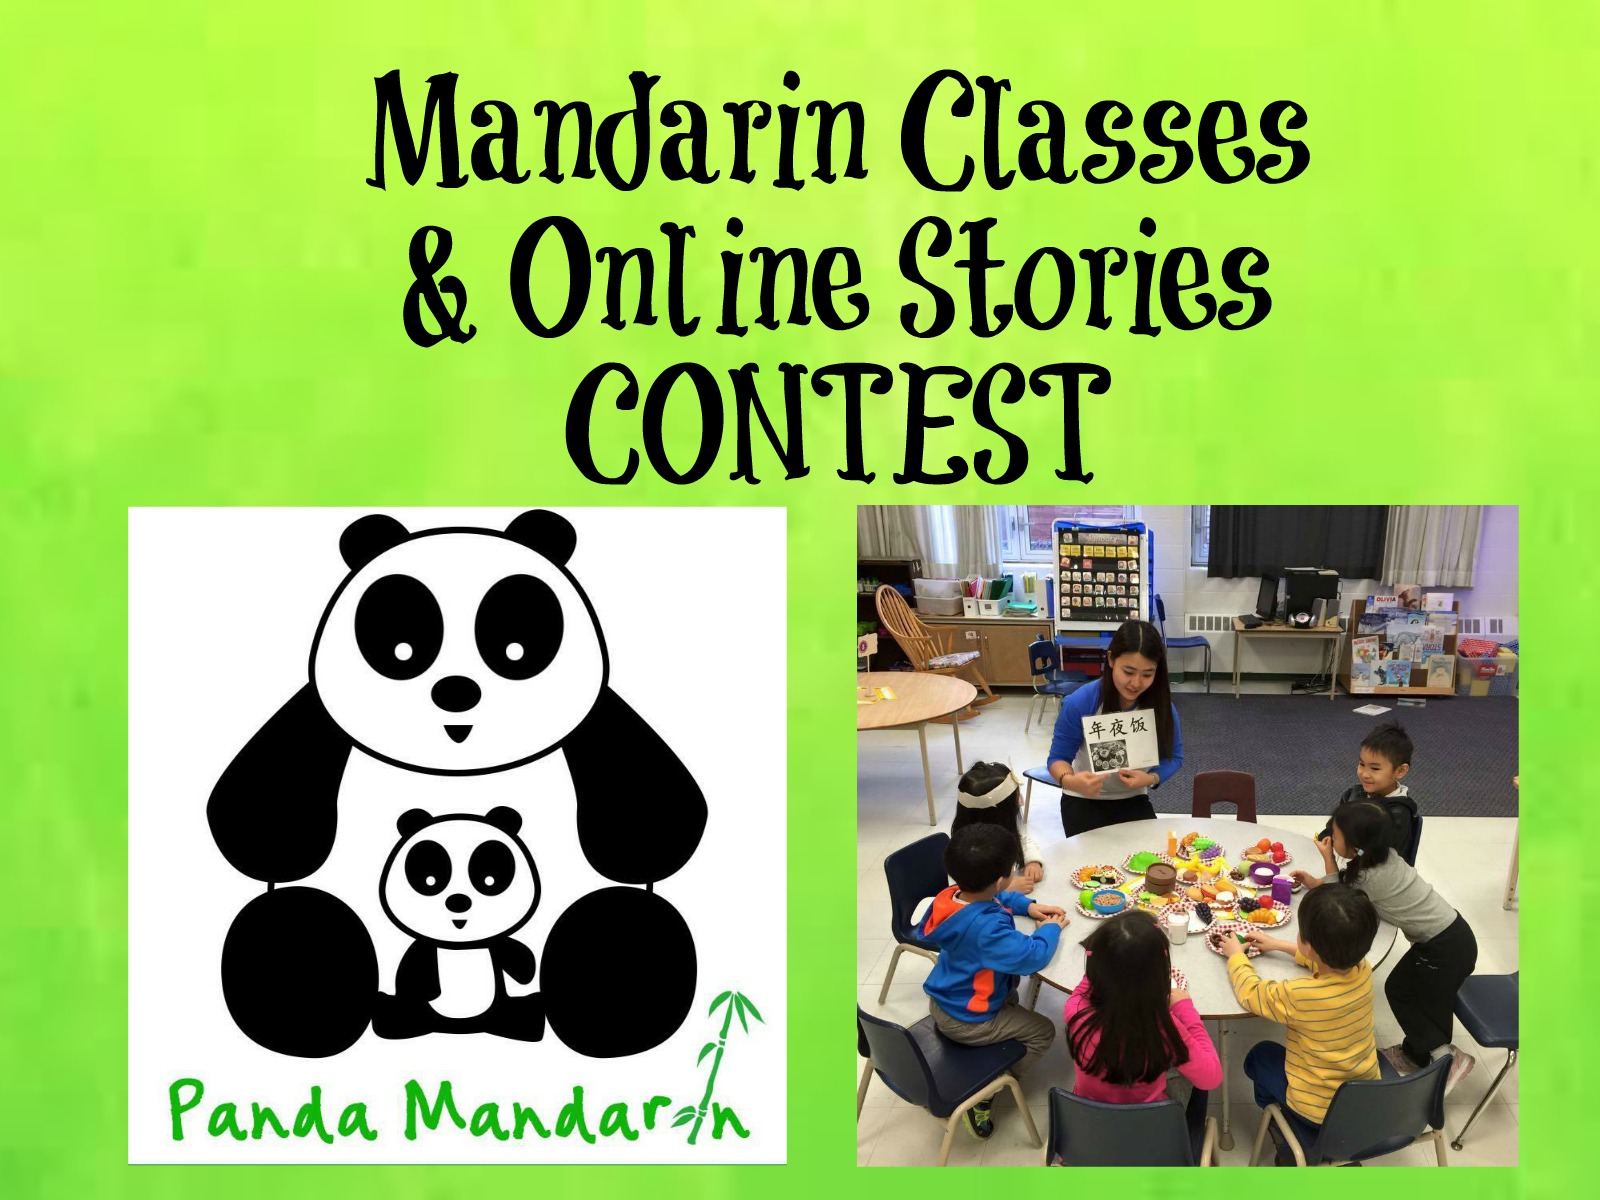 Win FREE Mandarin Classes & Mandarin Online Stories